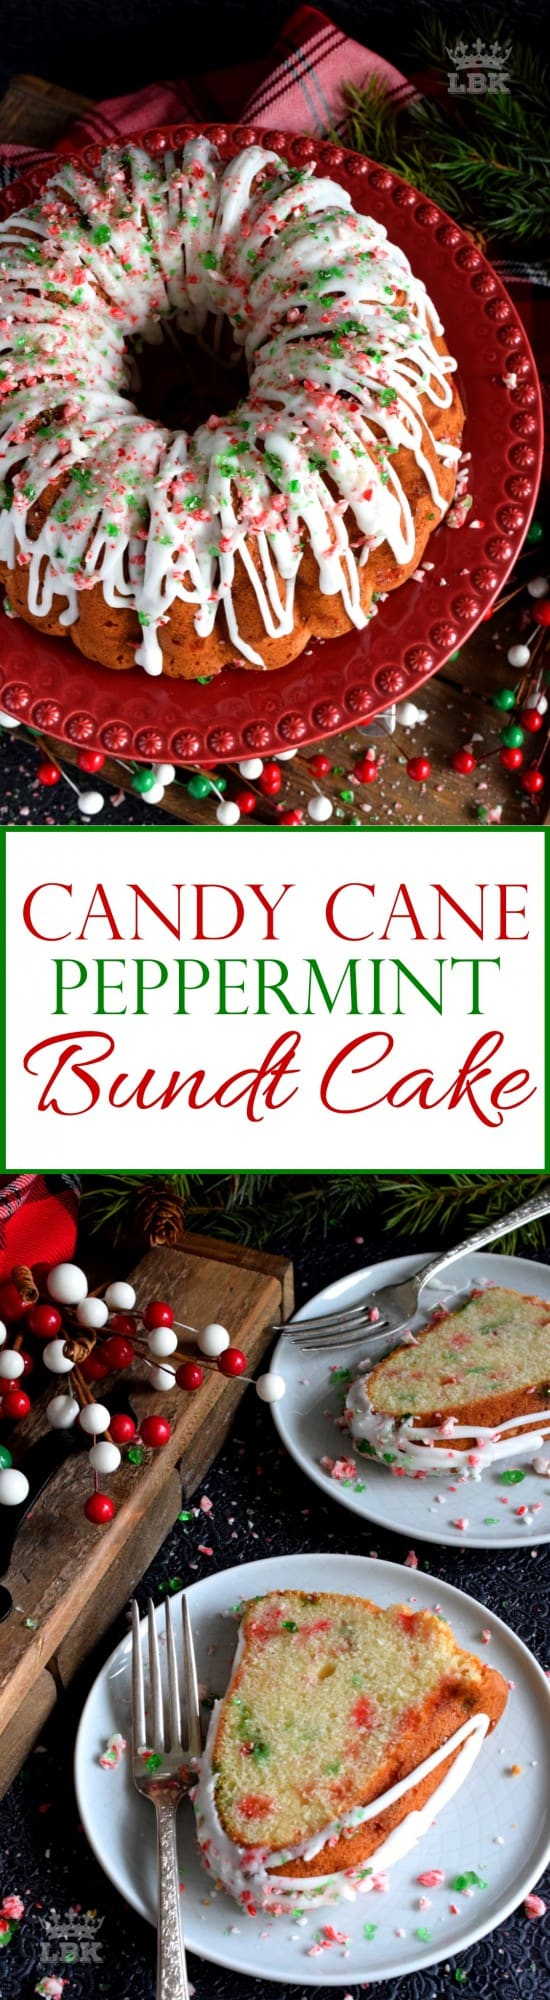 Candy Cane Peppermint Bundt Cake - Peppermint is a dominant Christmastime flavour, so this candy cane bundt cake has a lot of it, and it's glazed too! Use crushed candy canes as garnish! #peppermint #candycane #bundt #cake #bundtbakers #christmas #holiday